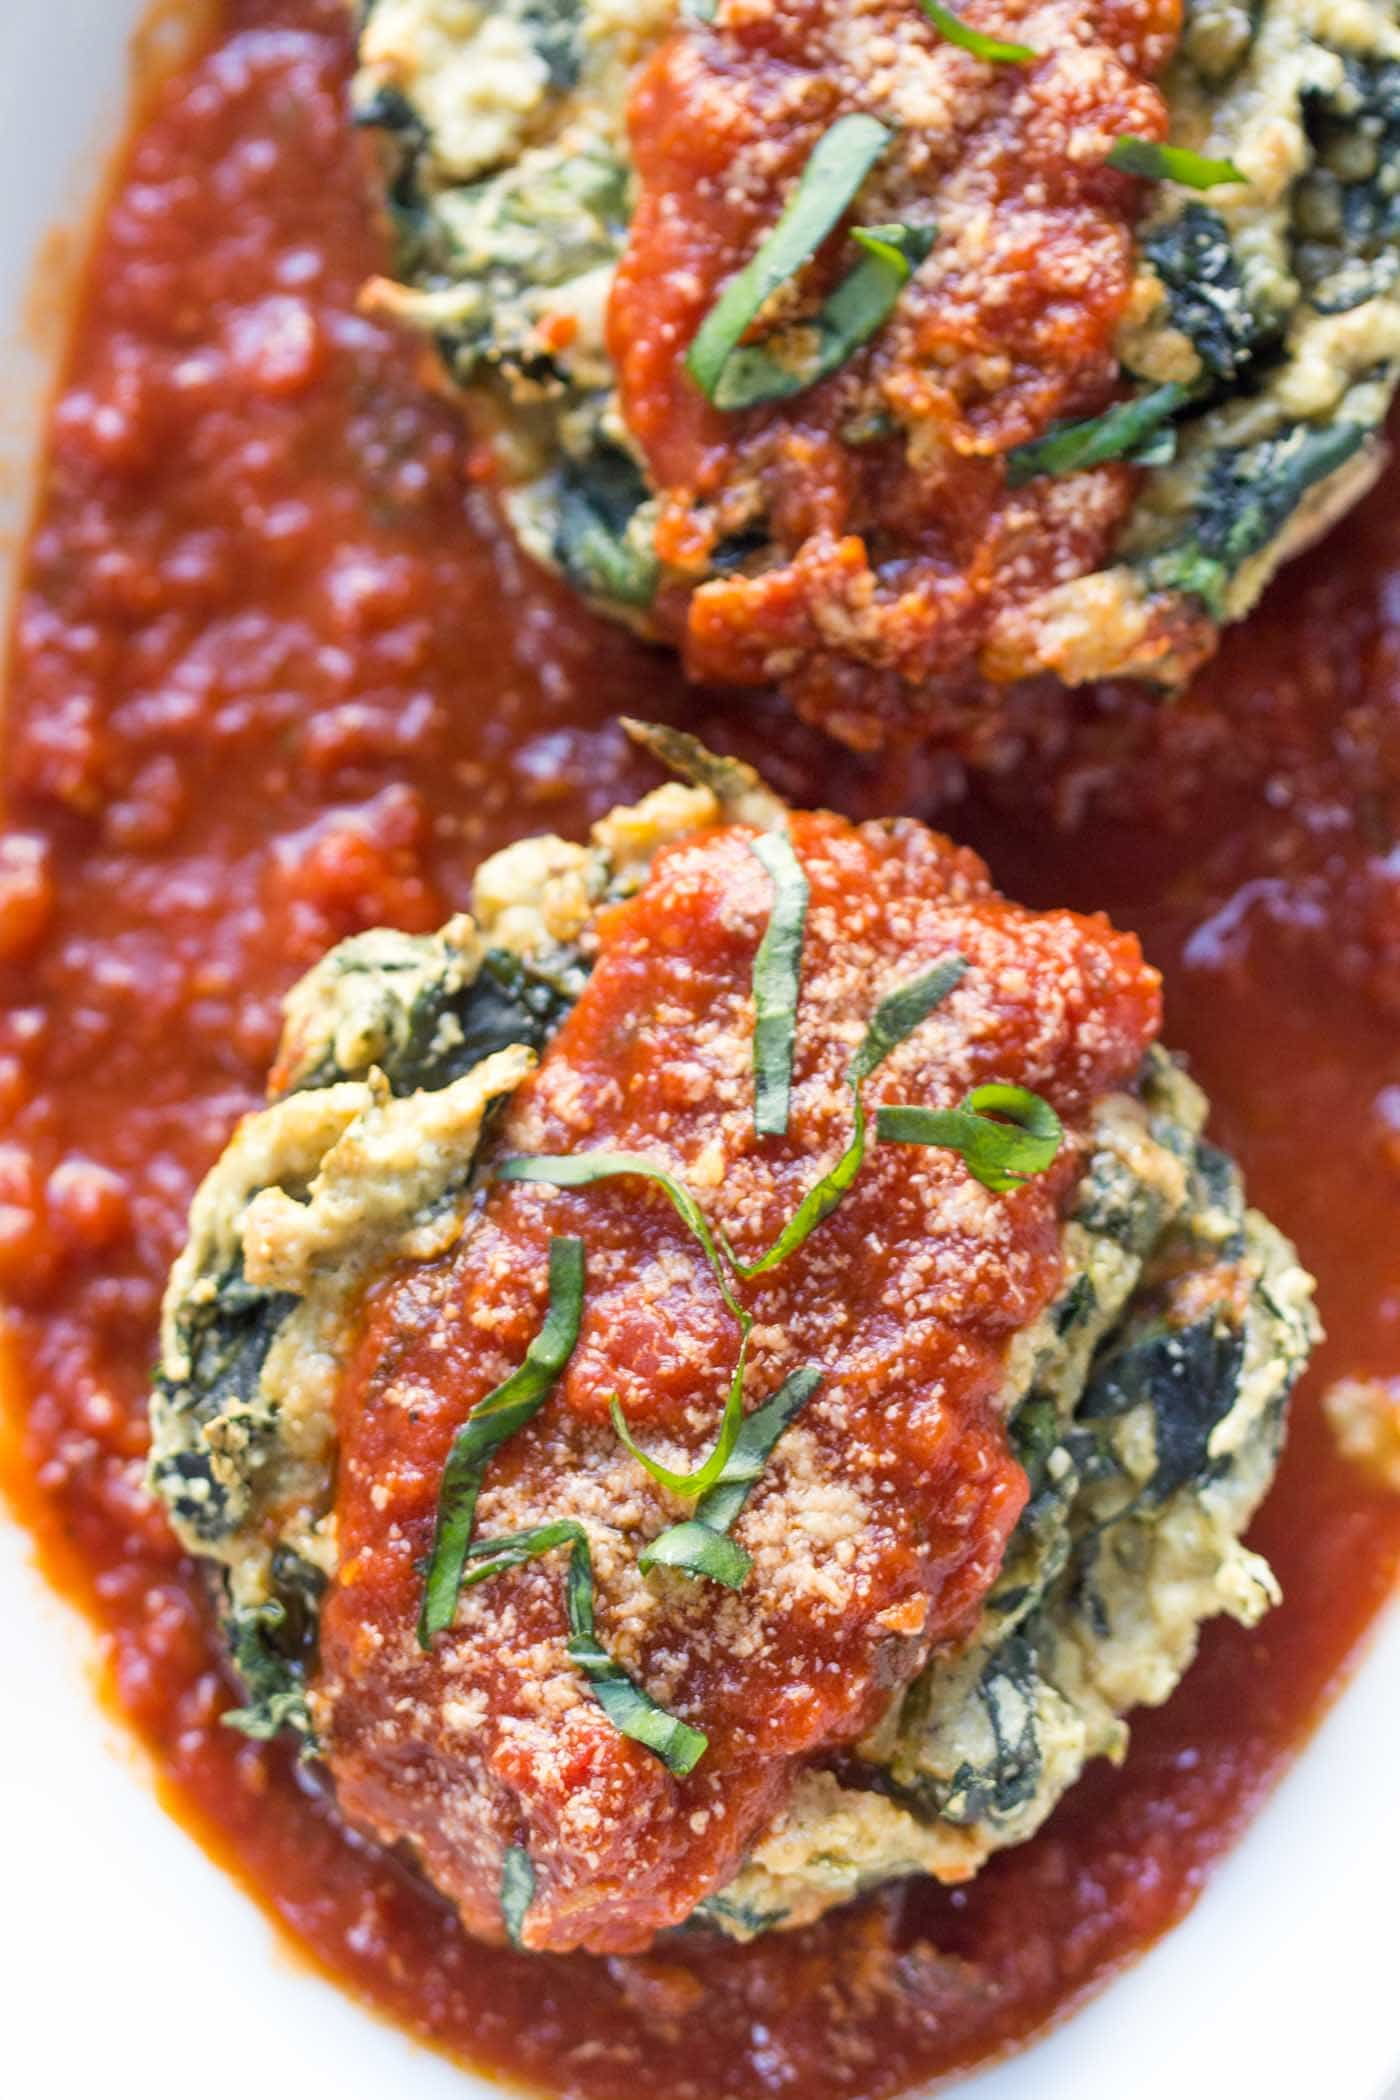 The most AMAZING vegan quinoa stuffed mushrooms with cashew ricotta and spinach -- a perfect weeknight meal for those who love Italian food but want something simple and healthy